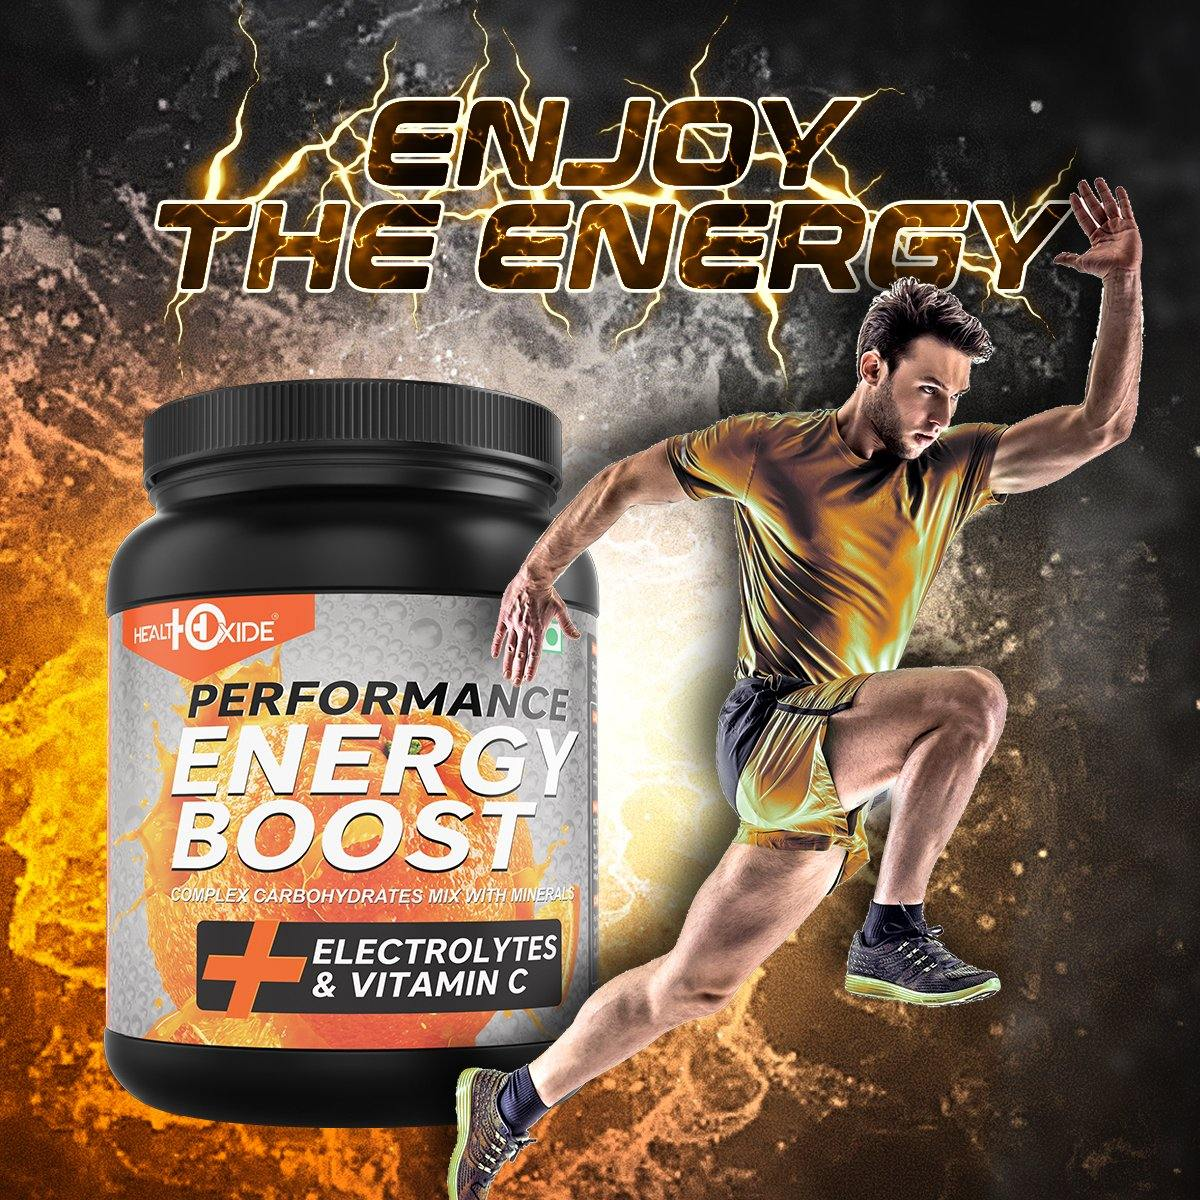 Boost Extra Power Energy Drink - HealthOxide